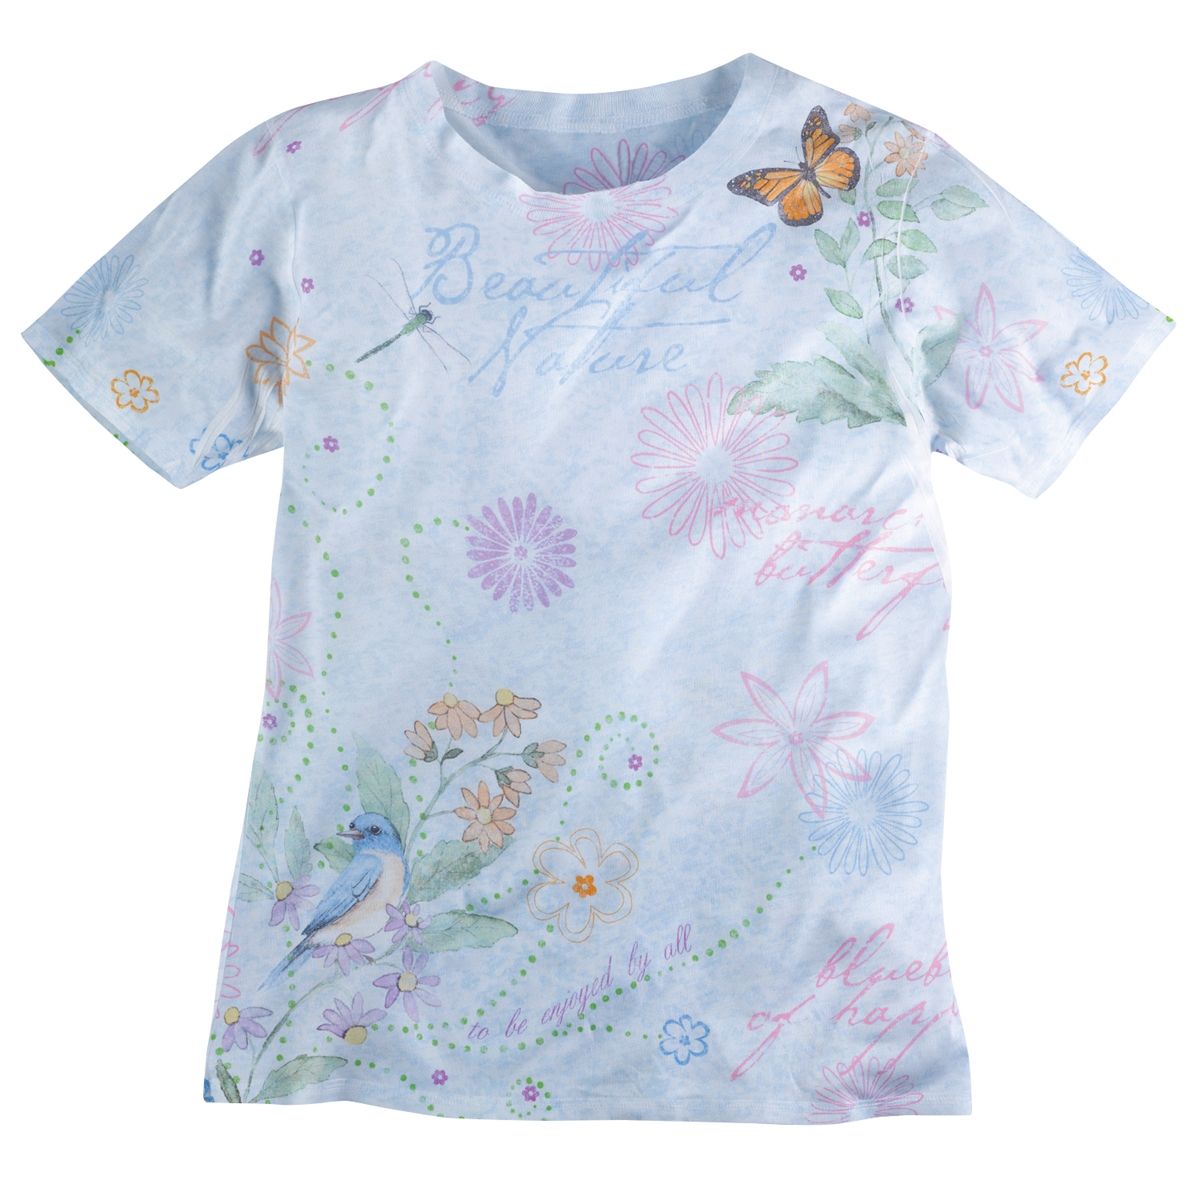 Nature Pastel Sublimation Tee